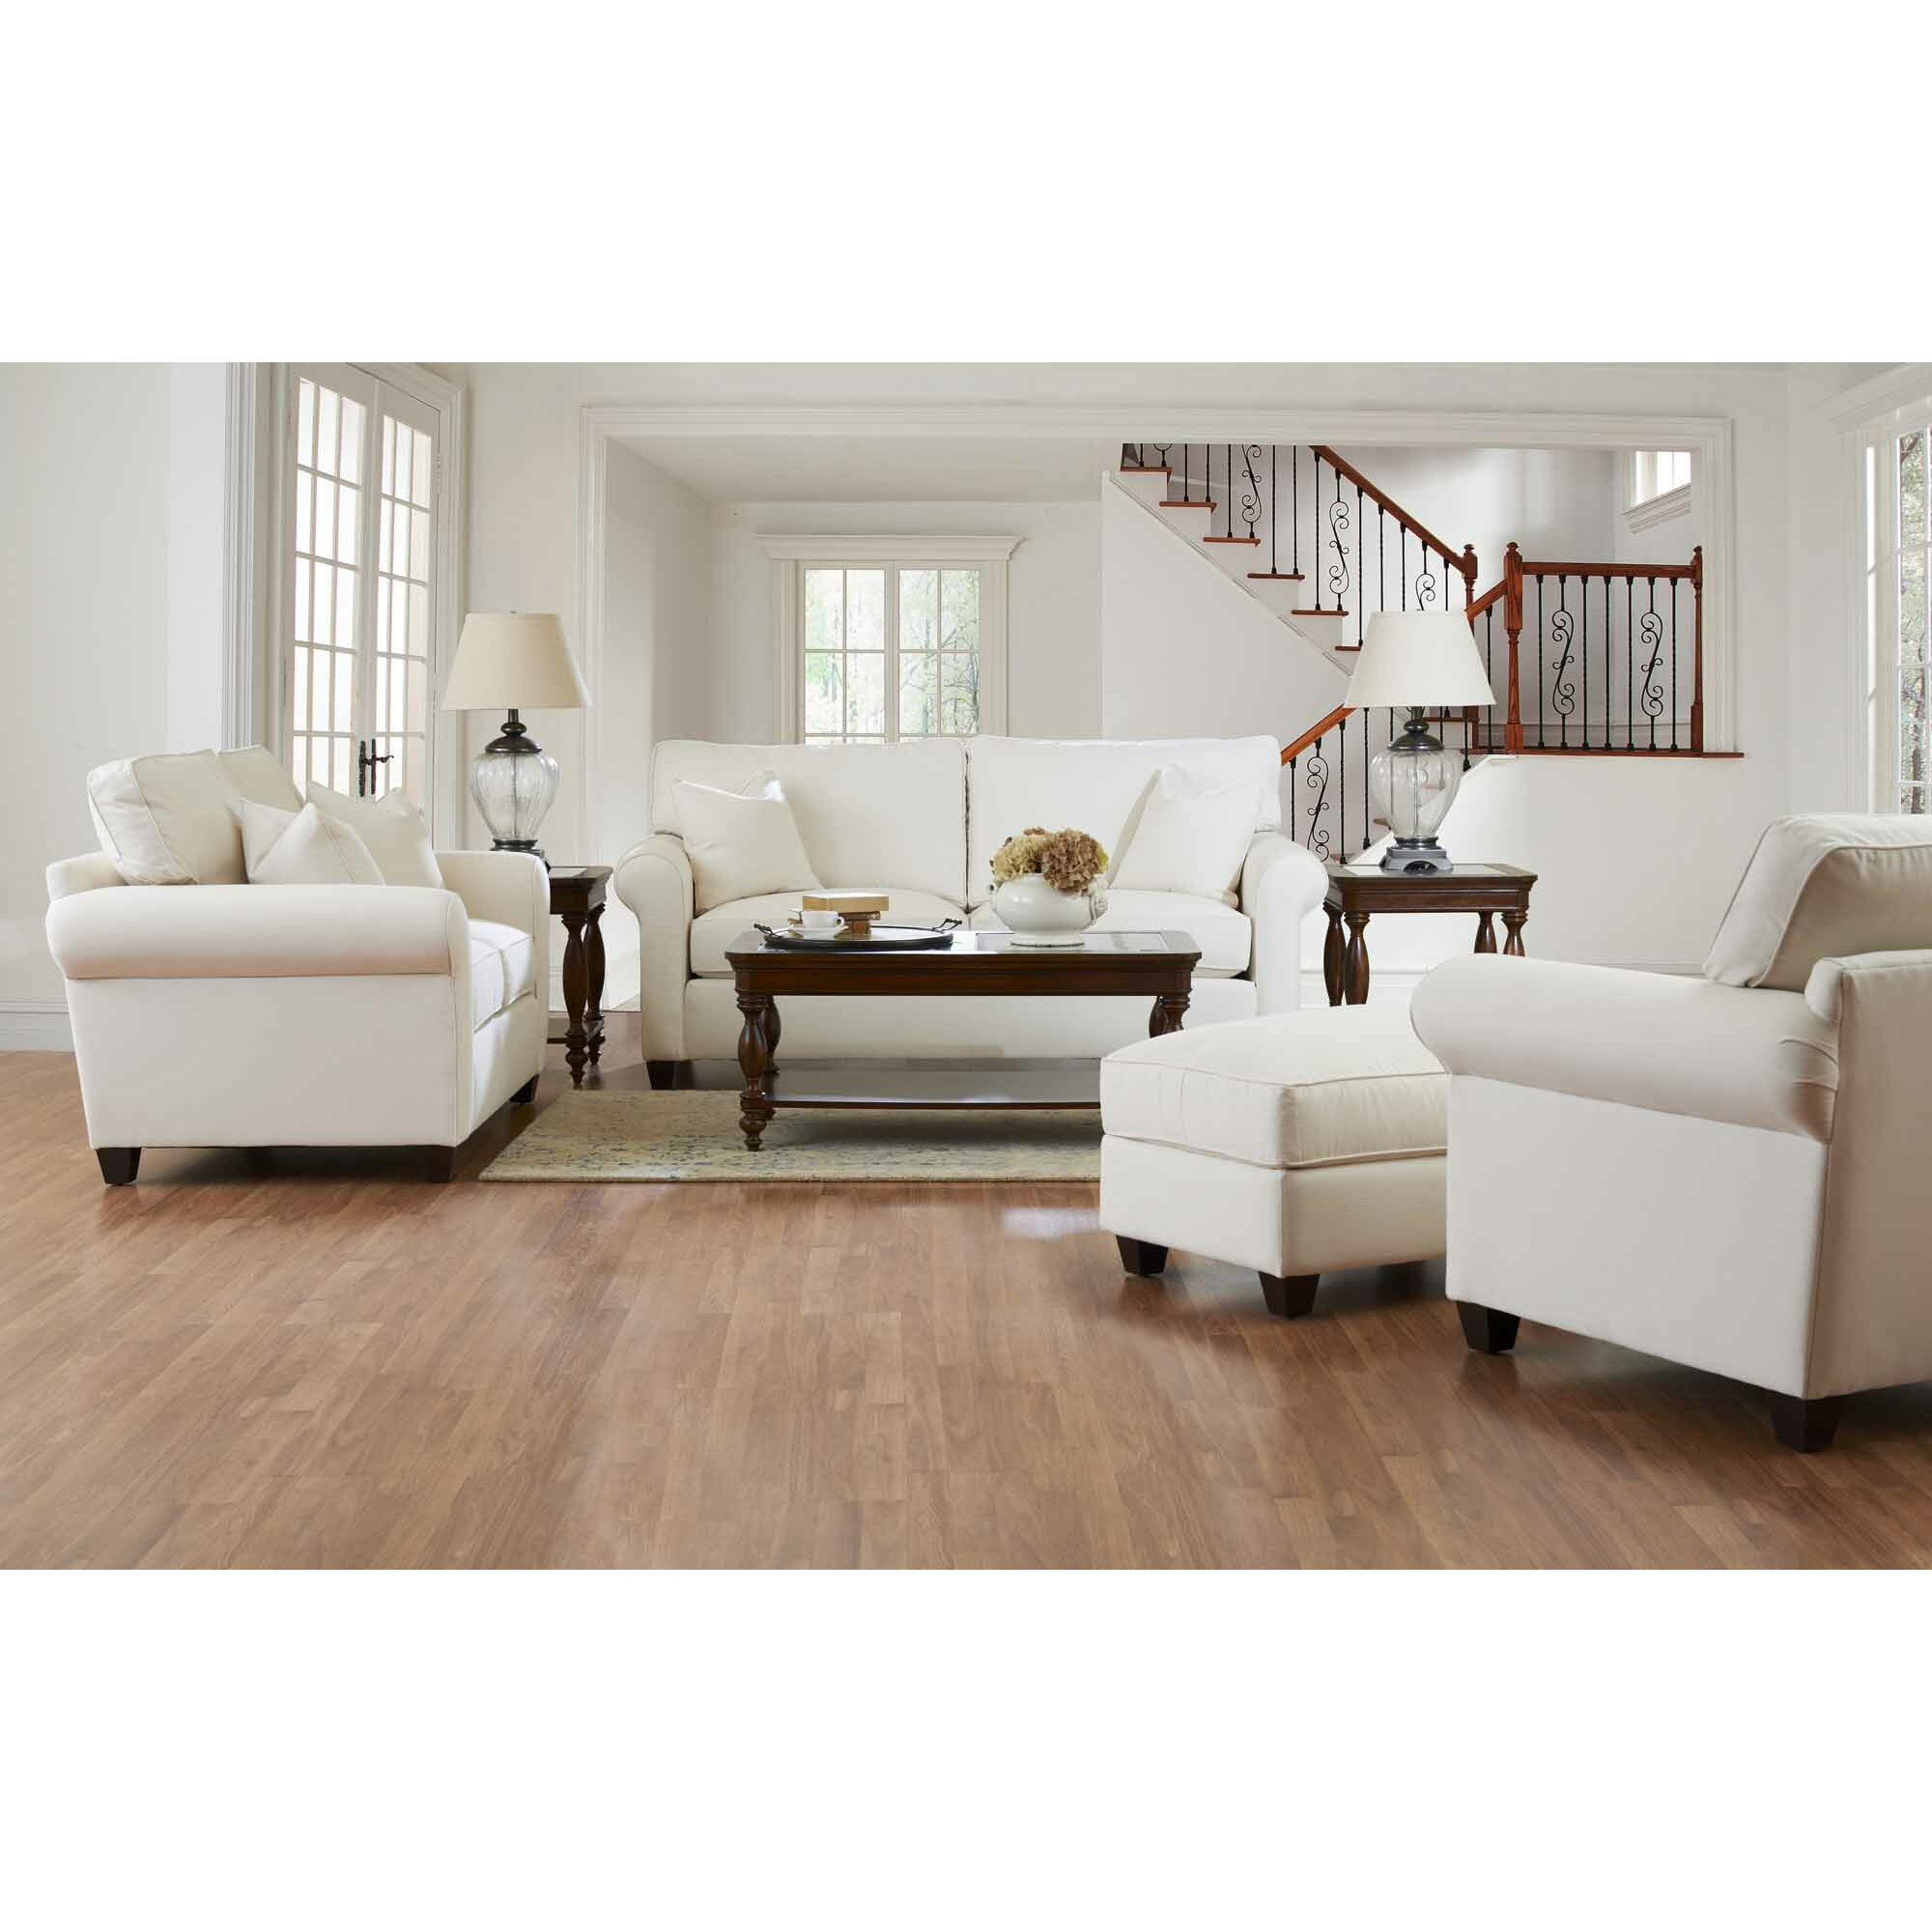 Wayfair Custom Upholstery Eliza Sleeper Sofa & Reviews ...